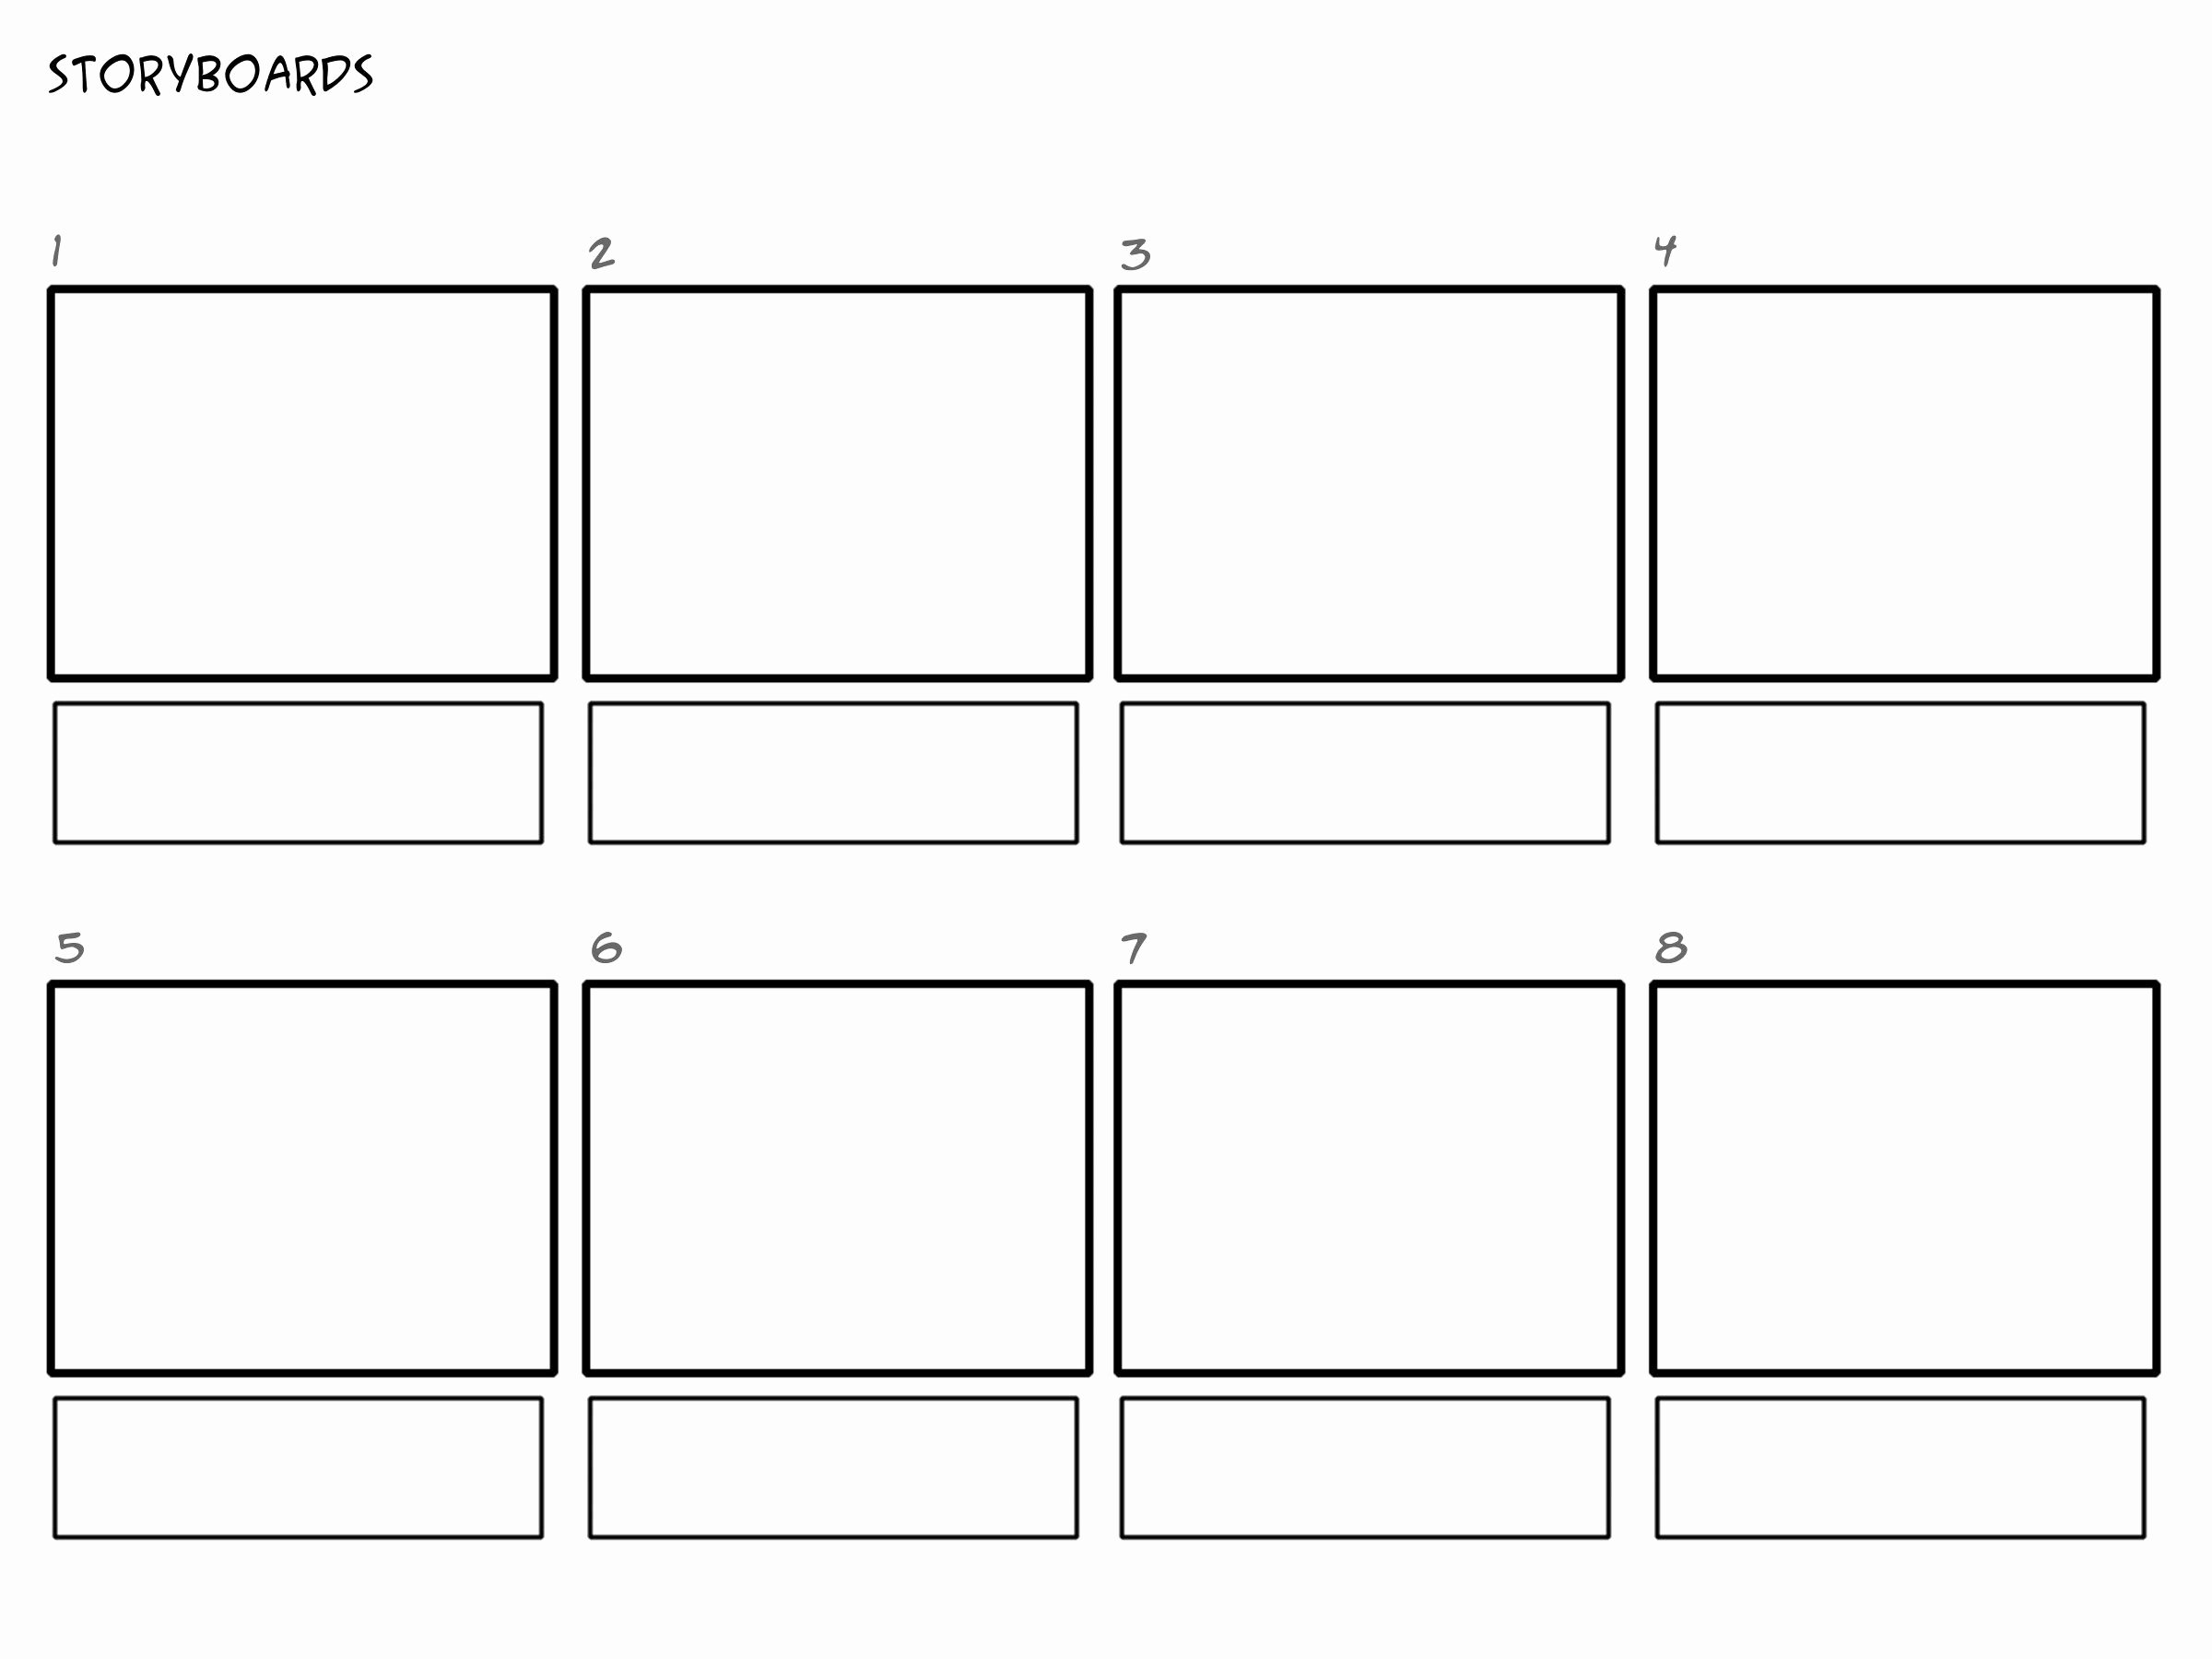 Film Storyboard Template Pdf Unique Image Result for Professional Film Storyboard Template